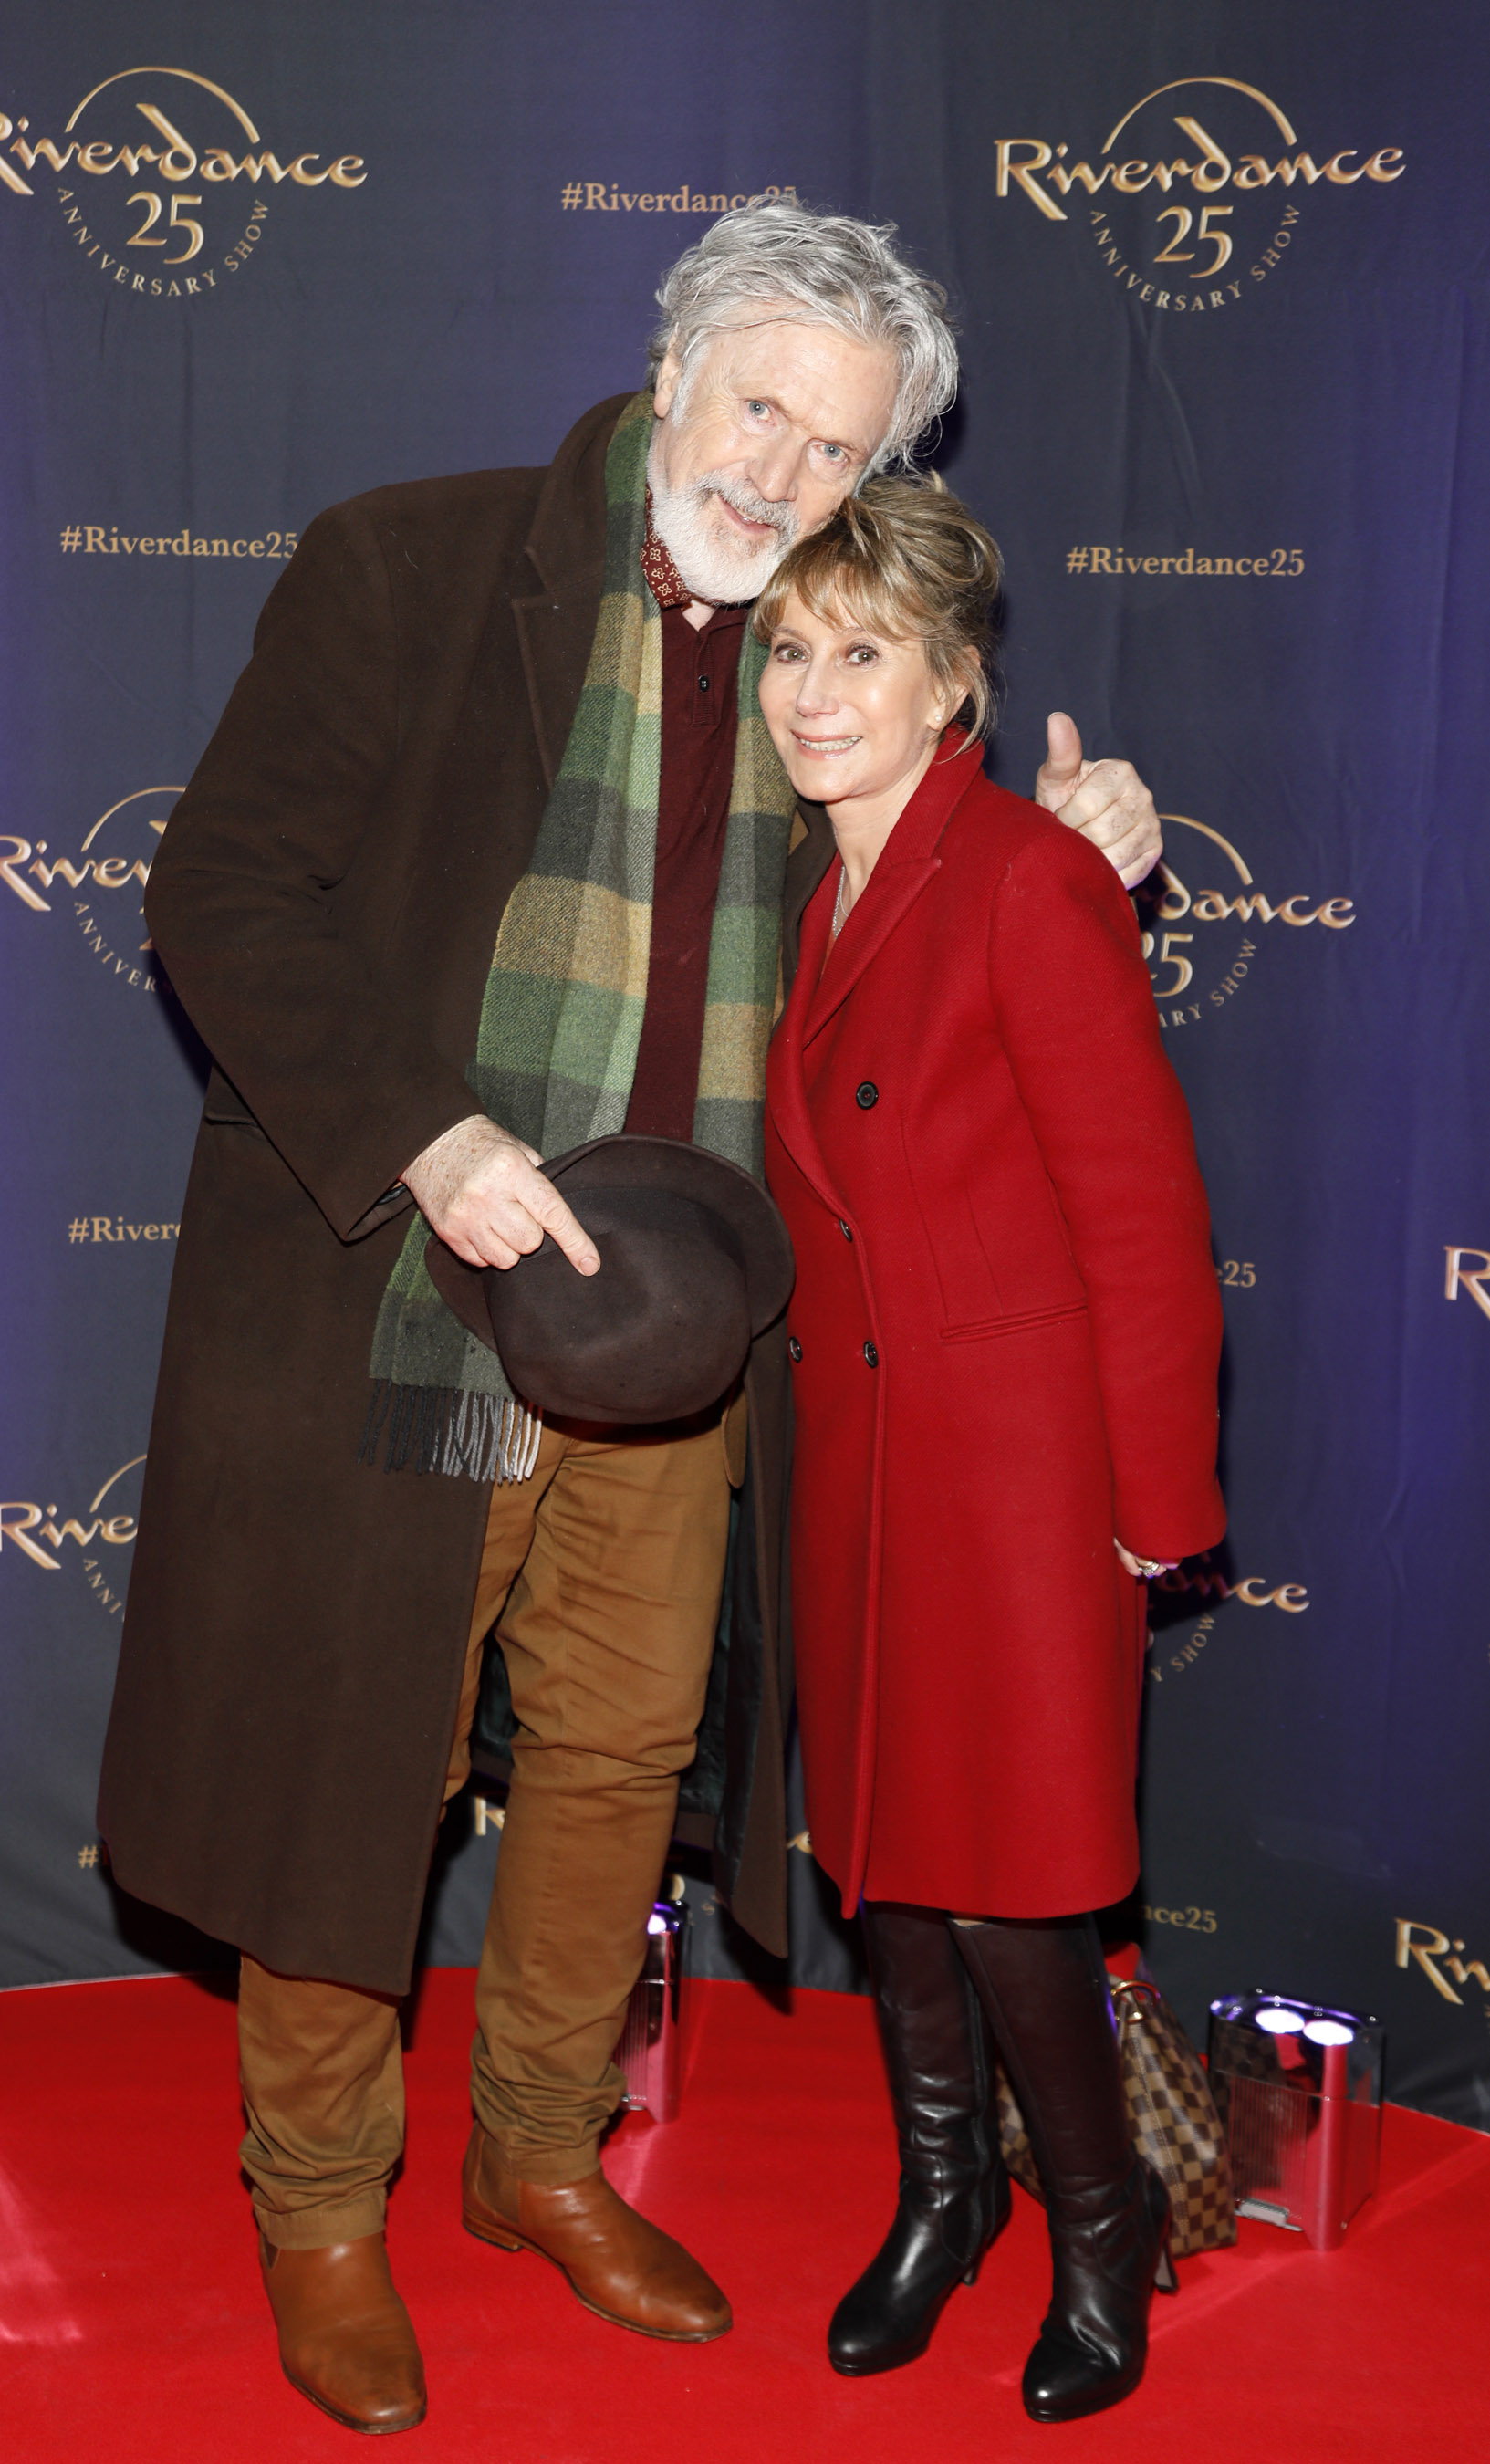 Patrick Bergin and Helen Goldin at the historic gala performance of Riverdance 25th Anniversary show at 3Arena Dublin exactly 25 years to the day that Riverdance was first performed at the Point Depot.  Photo: Kieran Harnett